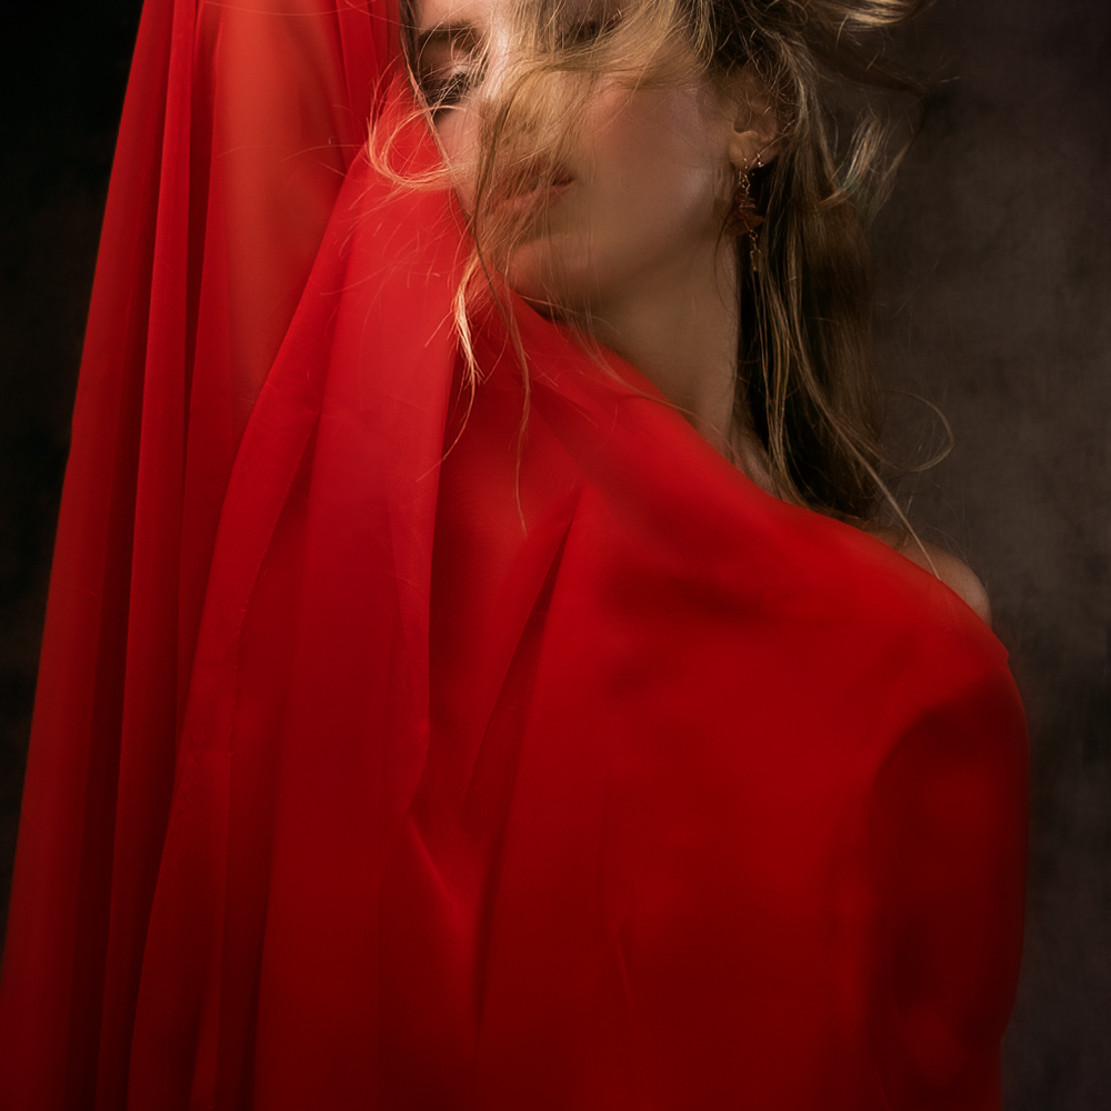 Lady in red unregb